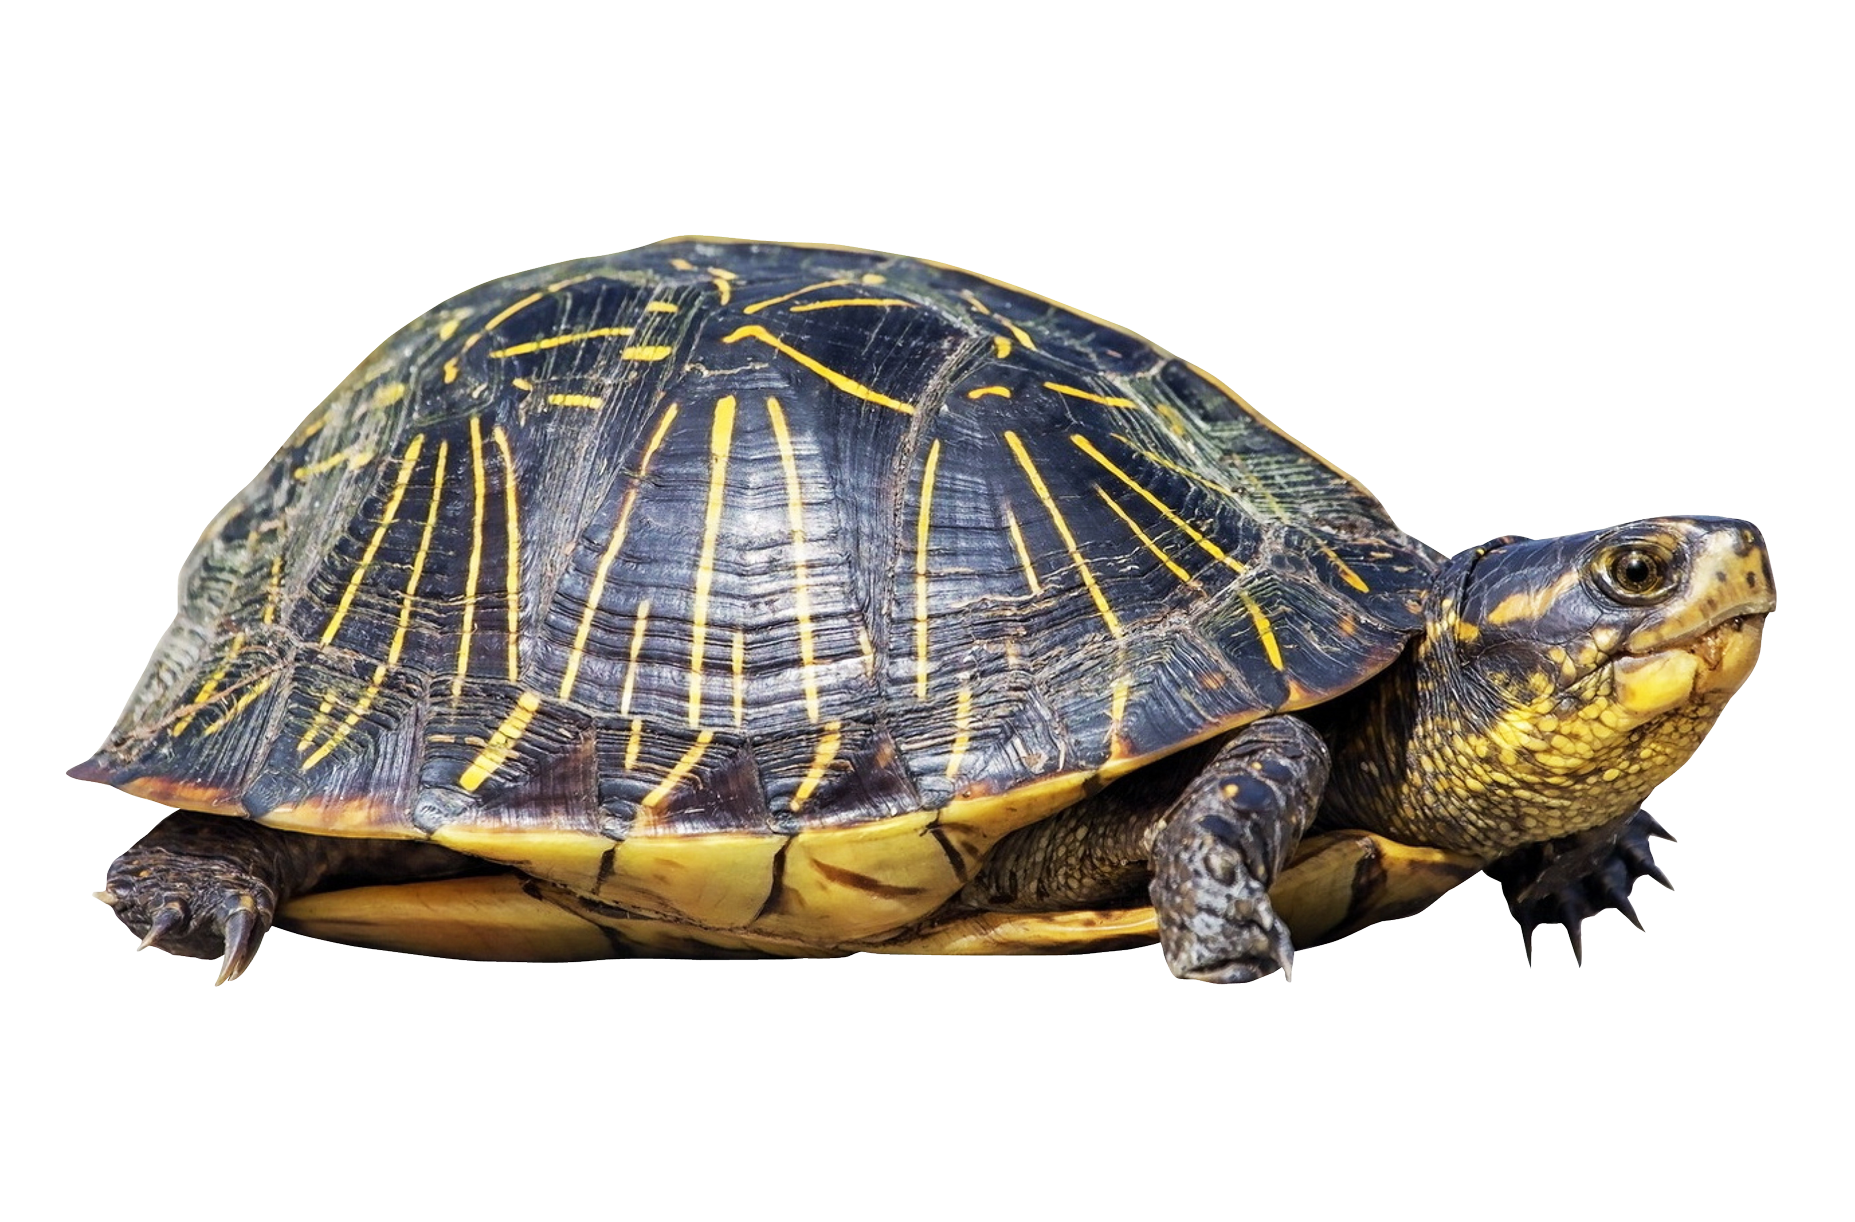 Turtle PNG Transparent Image - Turtle Shell PNG HD